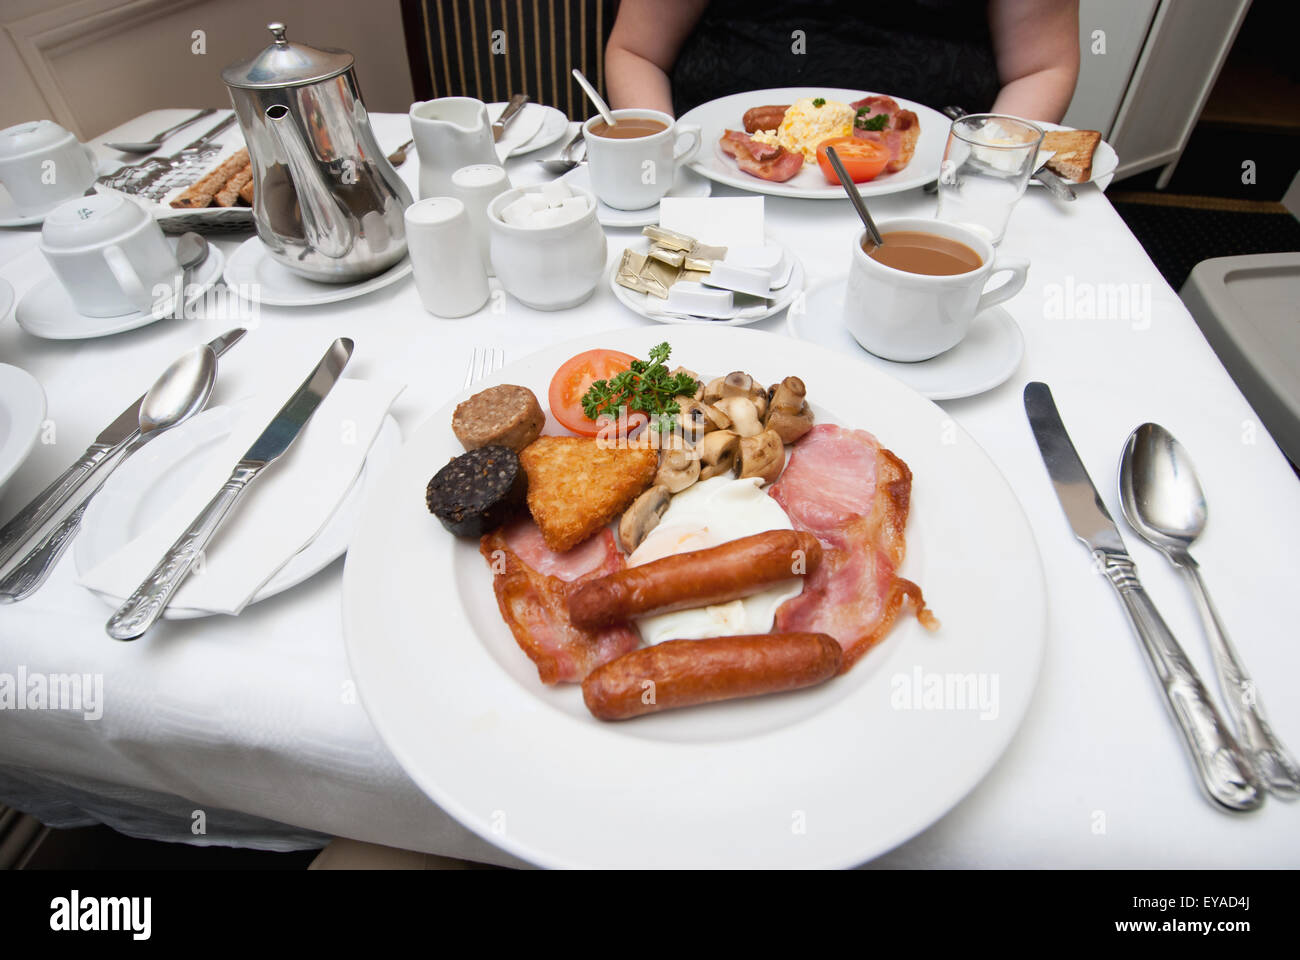 Breakfast Served On White Plates At A Table; Ireland - Stock Image